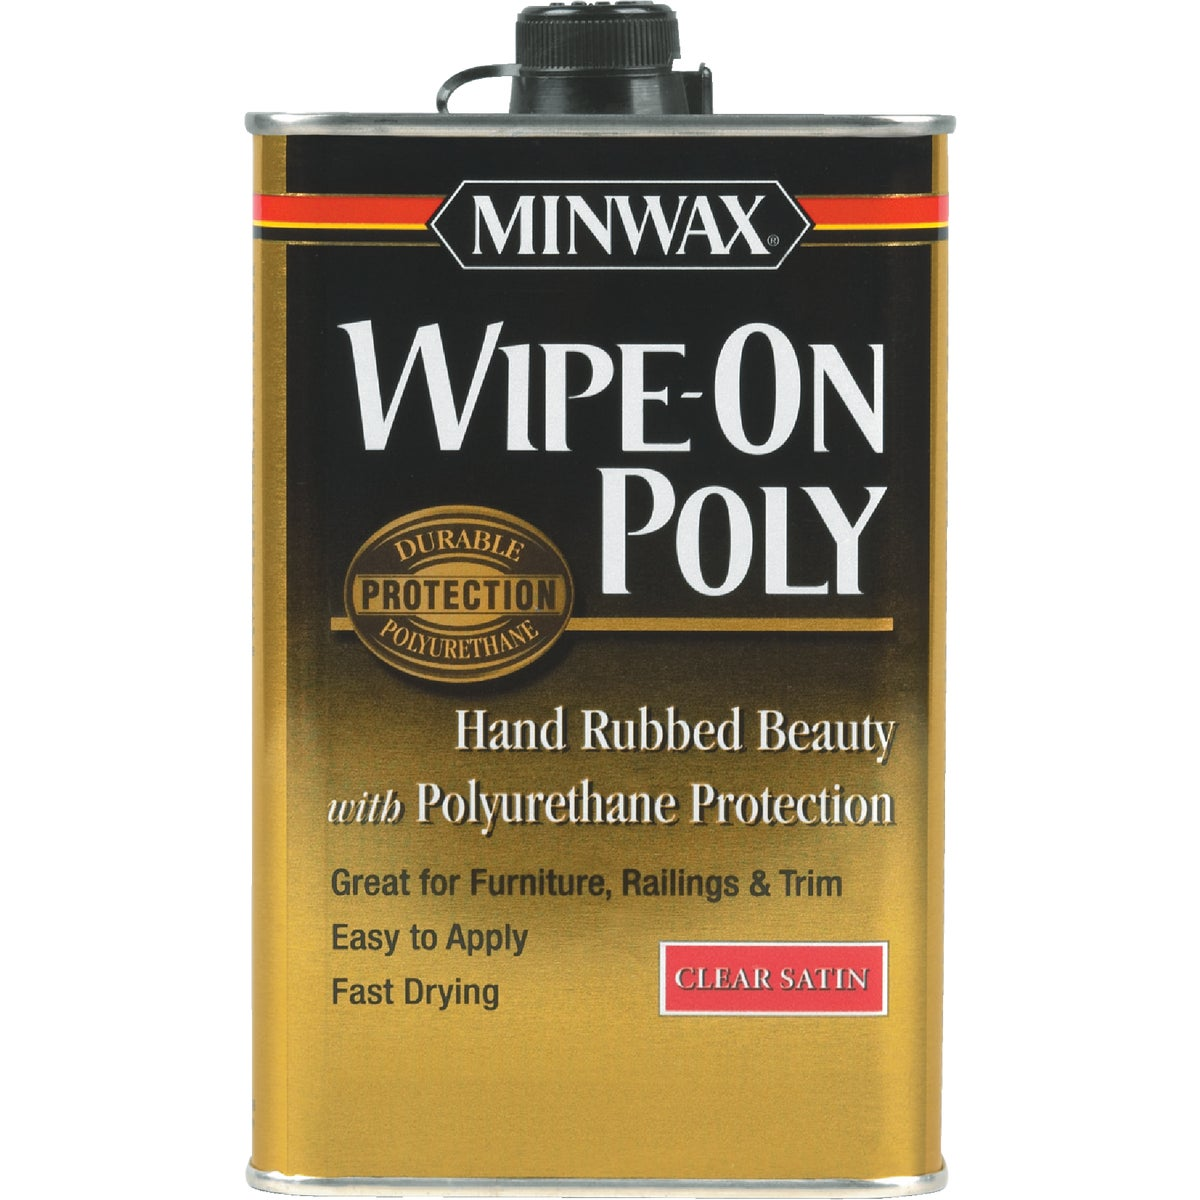 SAT WIPE-ON POLYURETHANE - 60910 by Minwax Company